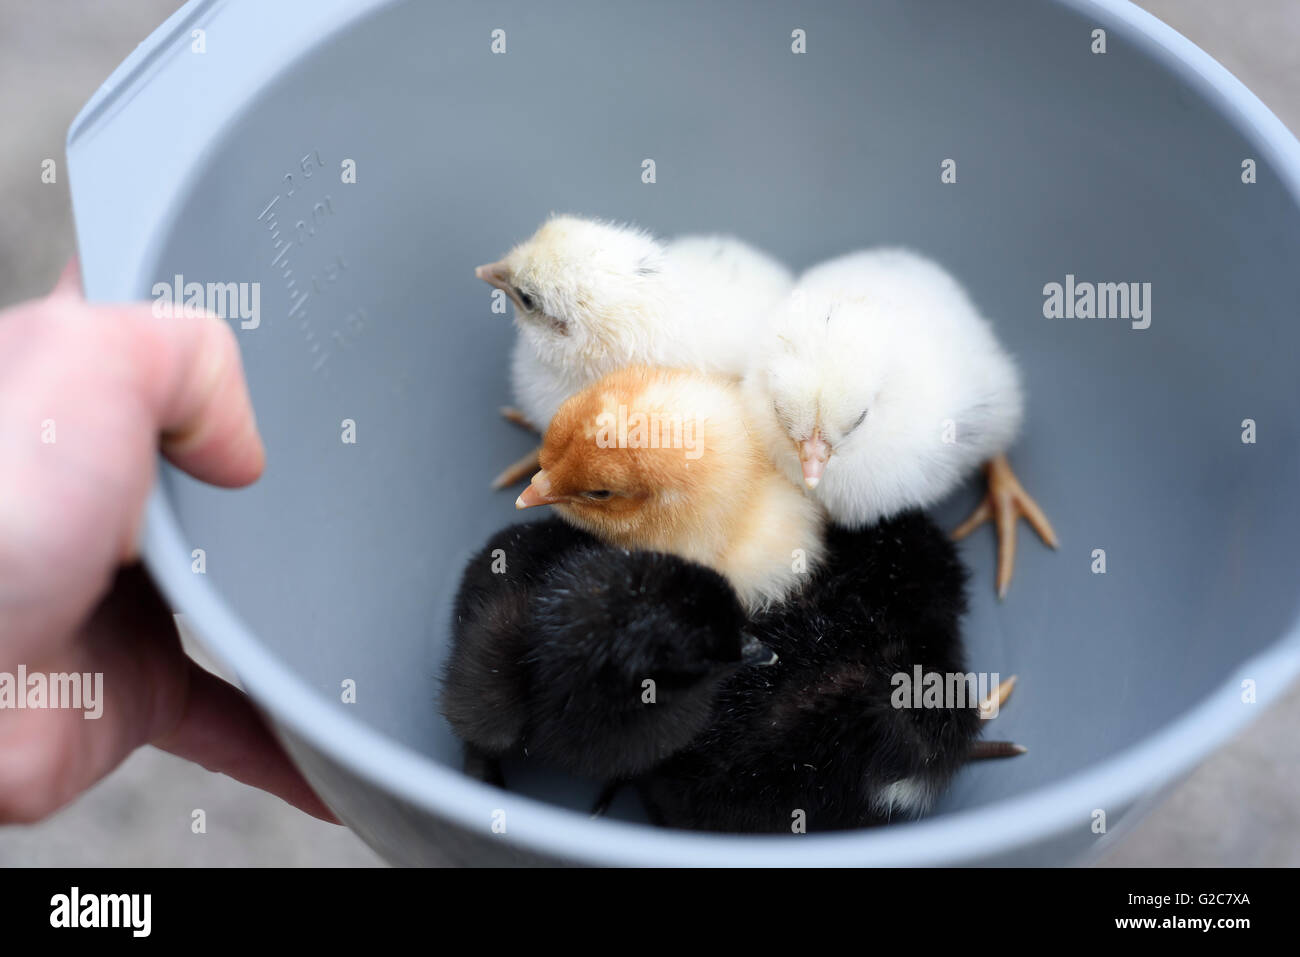 Newly hatched chickens, one day old, on a farm in Dalarna, Sweden - Stock Image